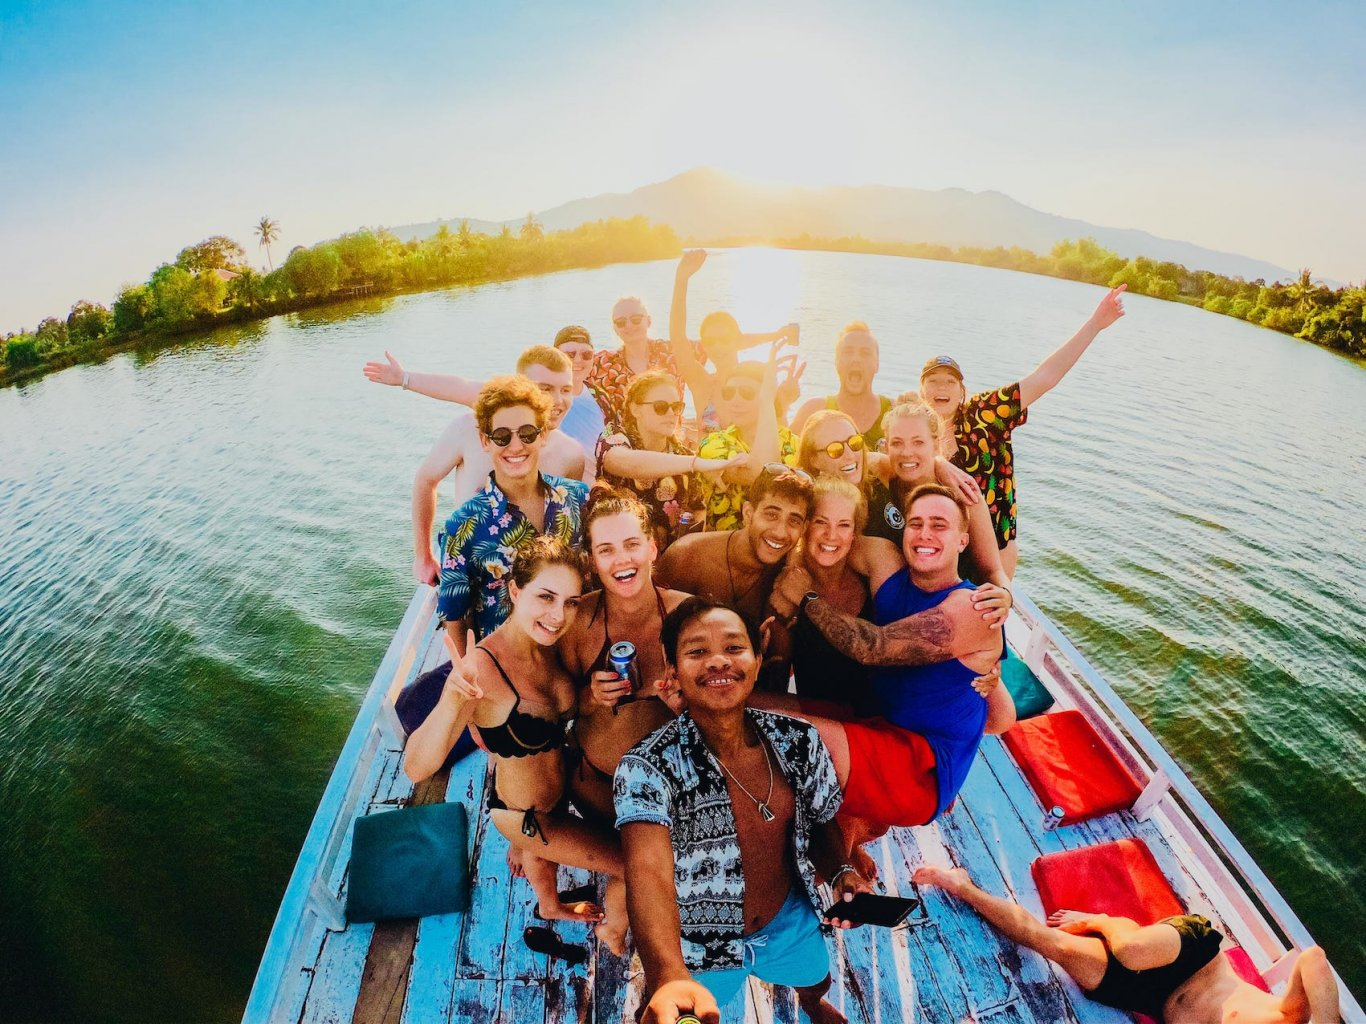 Group photo on boat